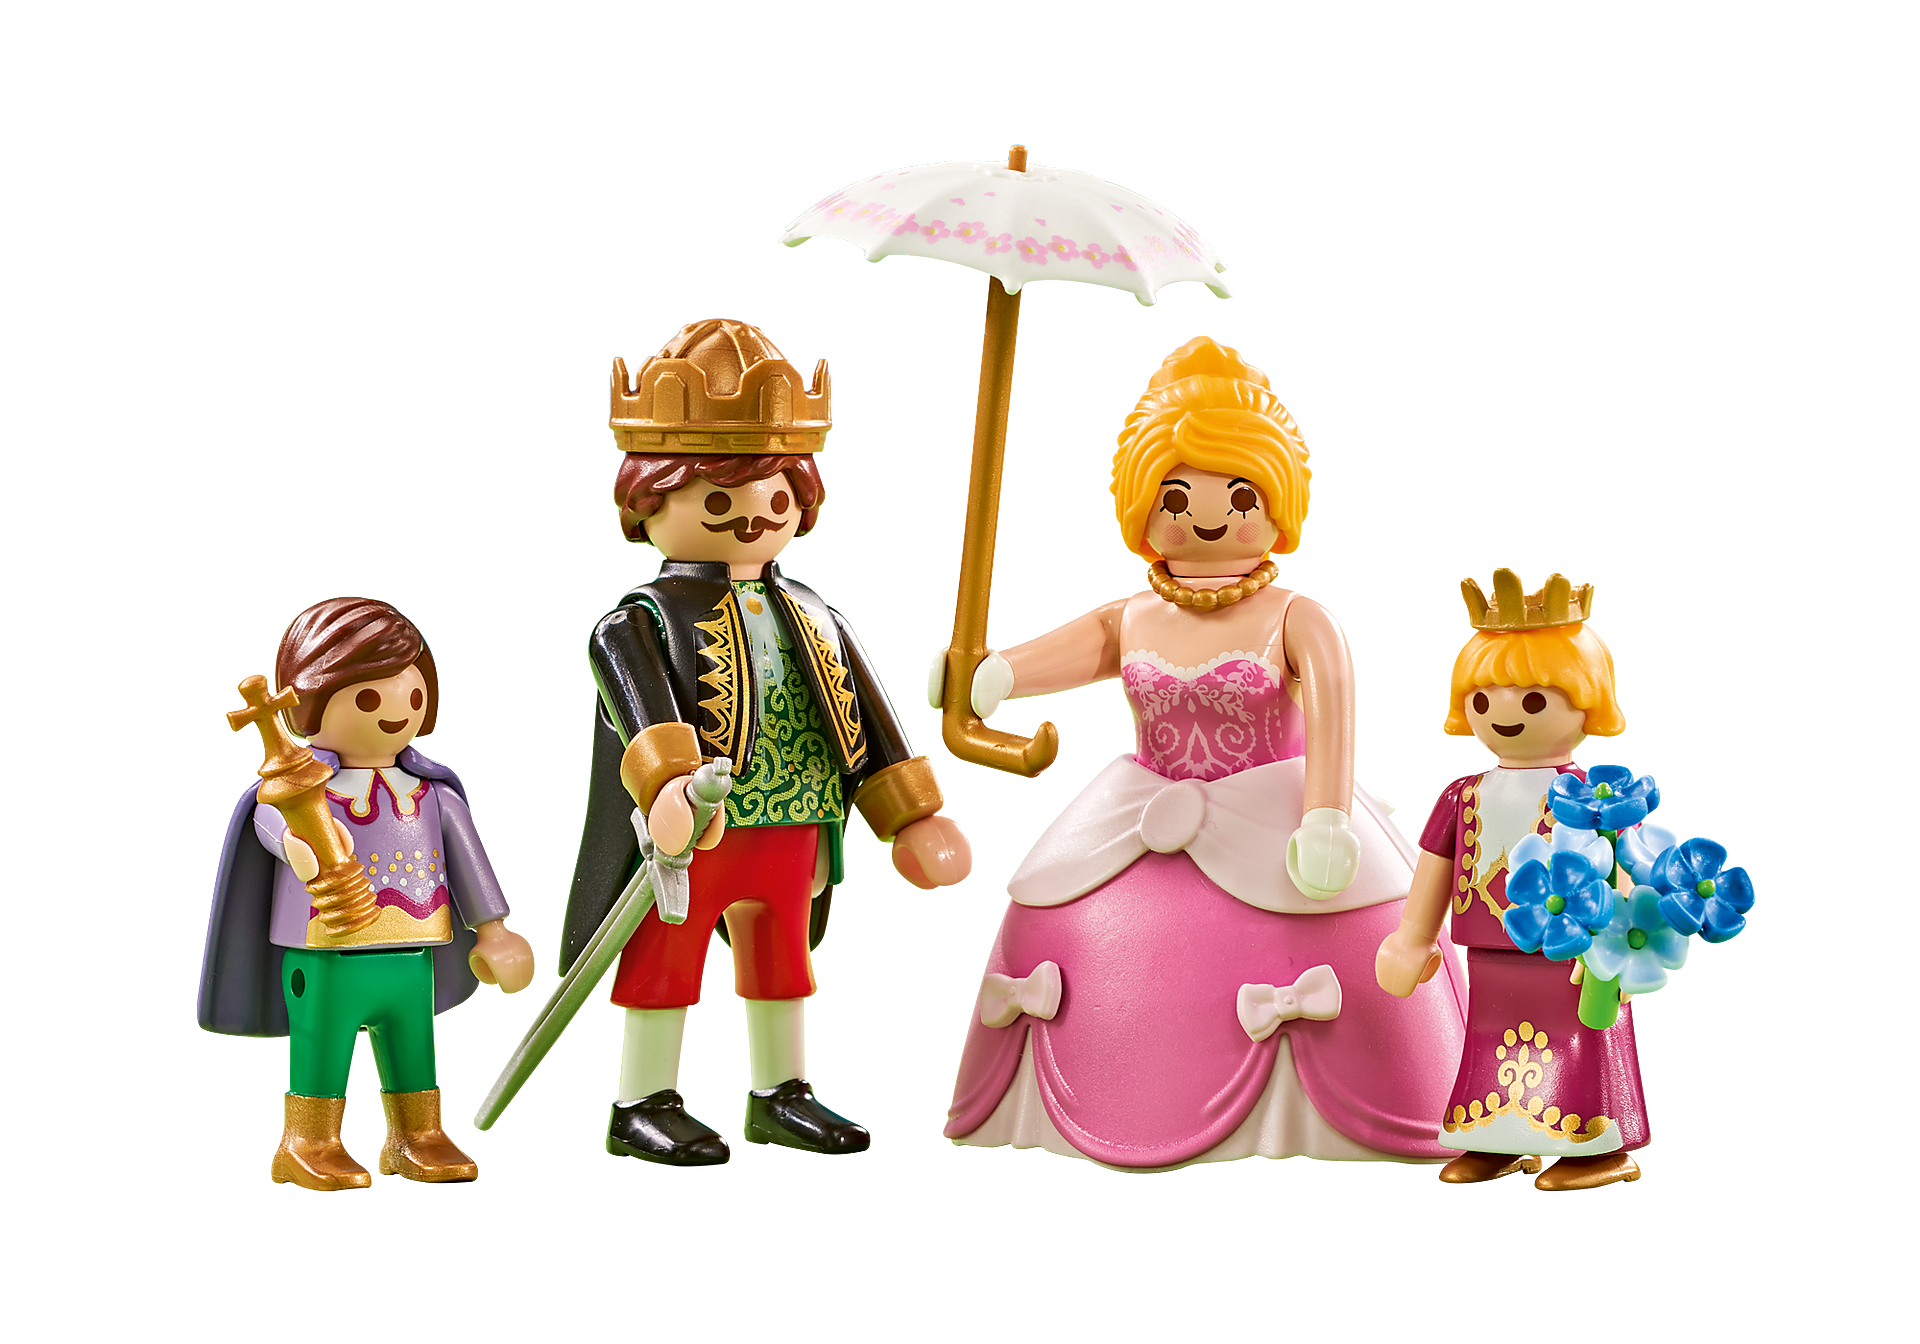 http://media.playmobil.com/i/playmobil/6562_product_detail/Βασιλική οικογένεια